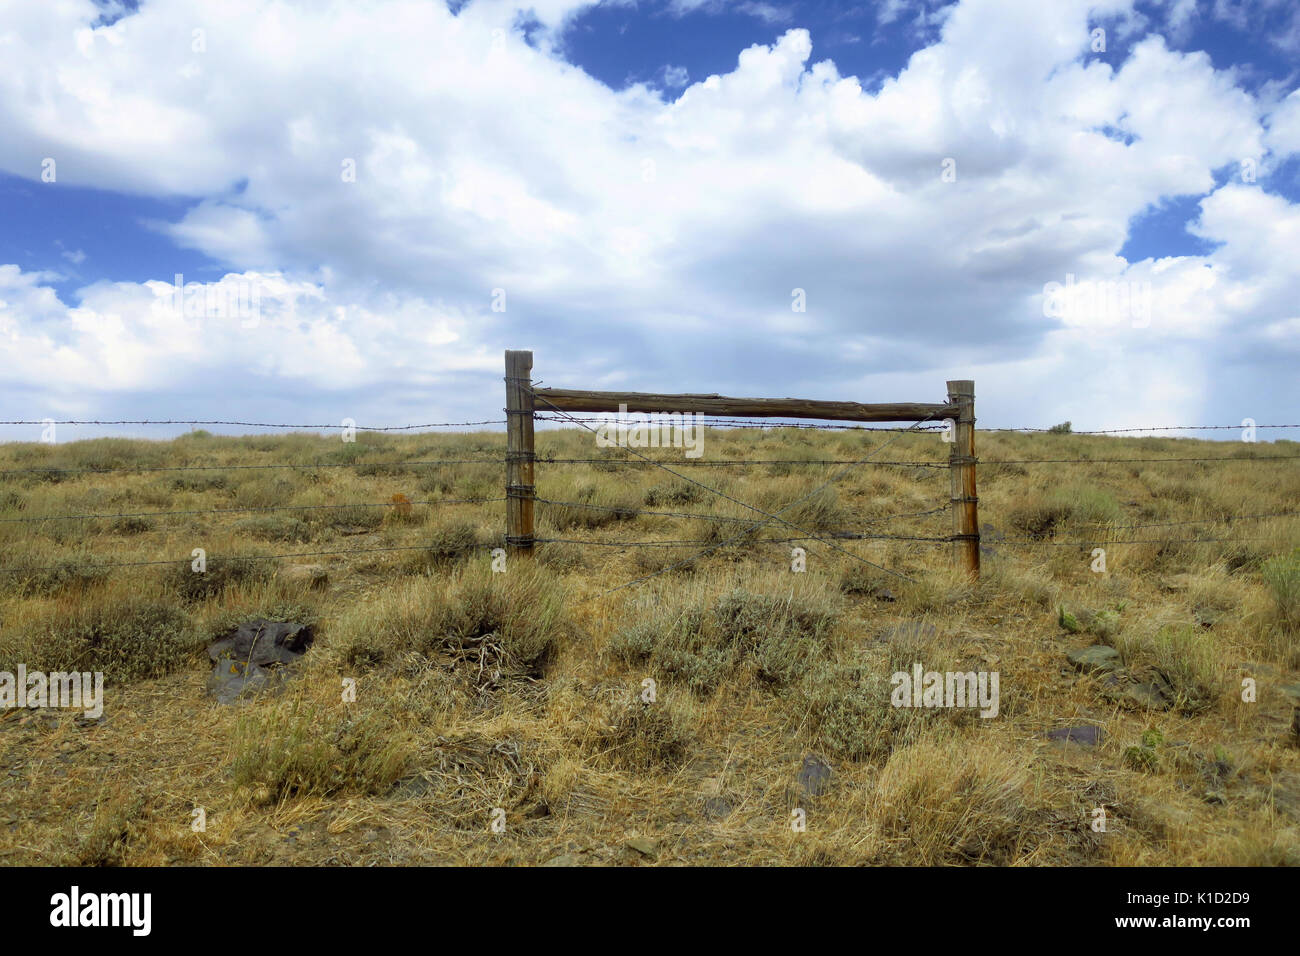 Old wooden fence barbed wire stock photos old wooden fence barbed wire stock images alamy - Rustic wood fences a pastoral atmosphere ...